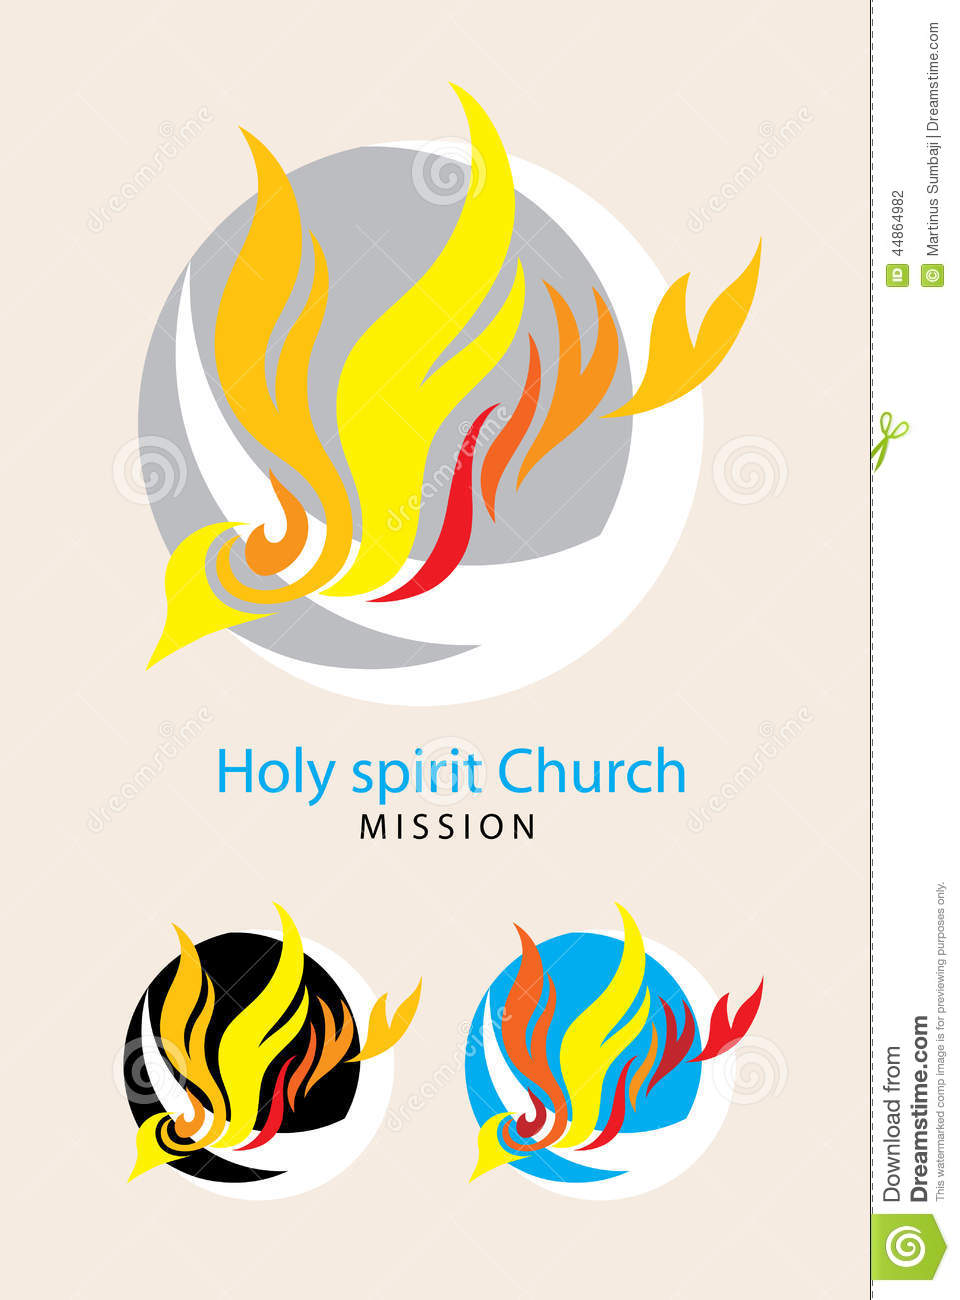 Global Holy spirit church mission logo, art vector design.